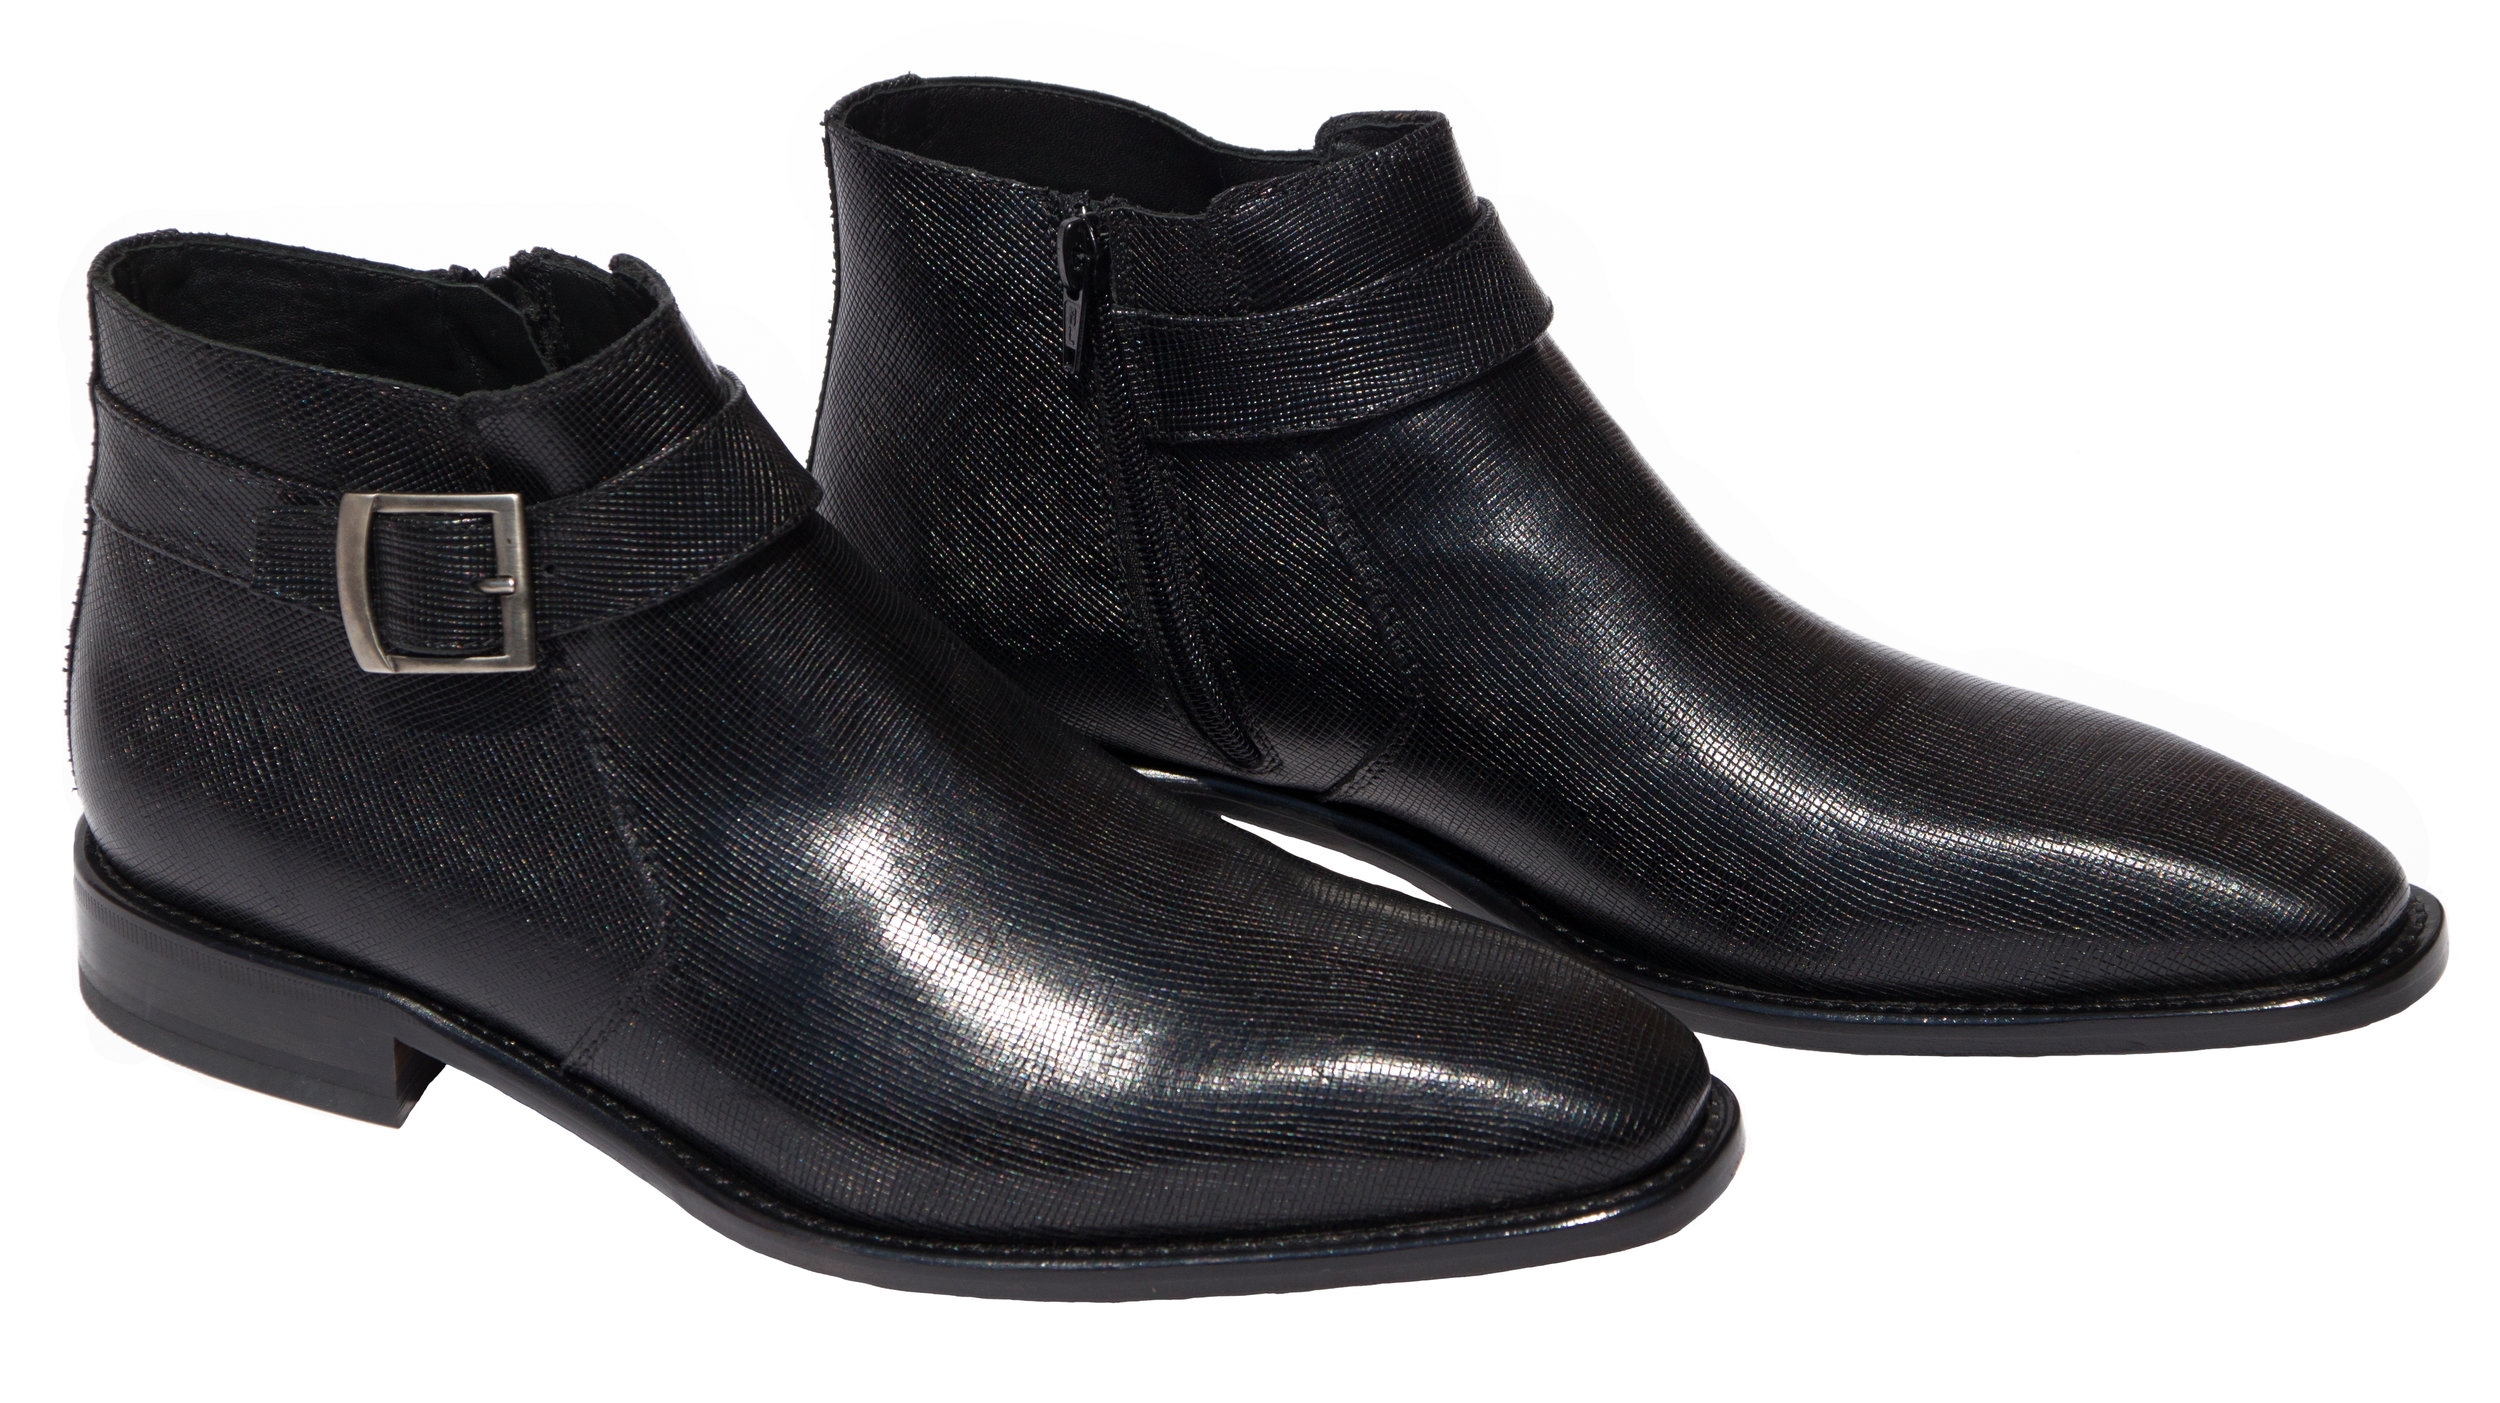 Style # 1221: Black   Saffiano Leather Ankle Boot featuring an inside zipper and a side buckle    Sizes available: 41 to 47 EU, including half sizes